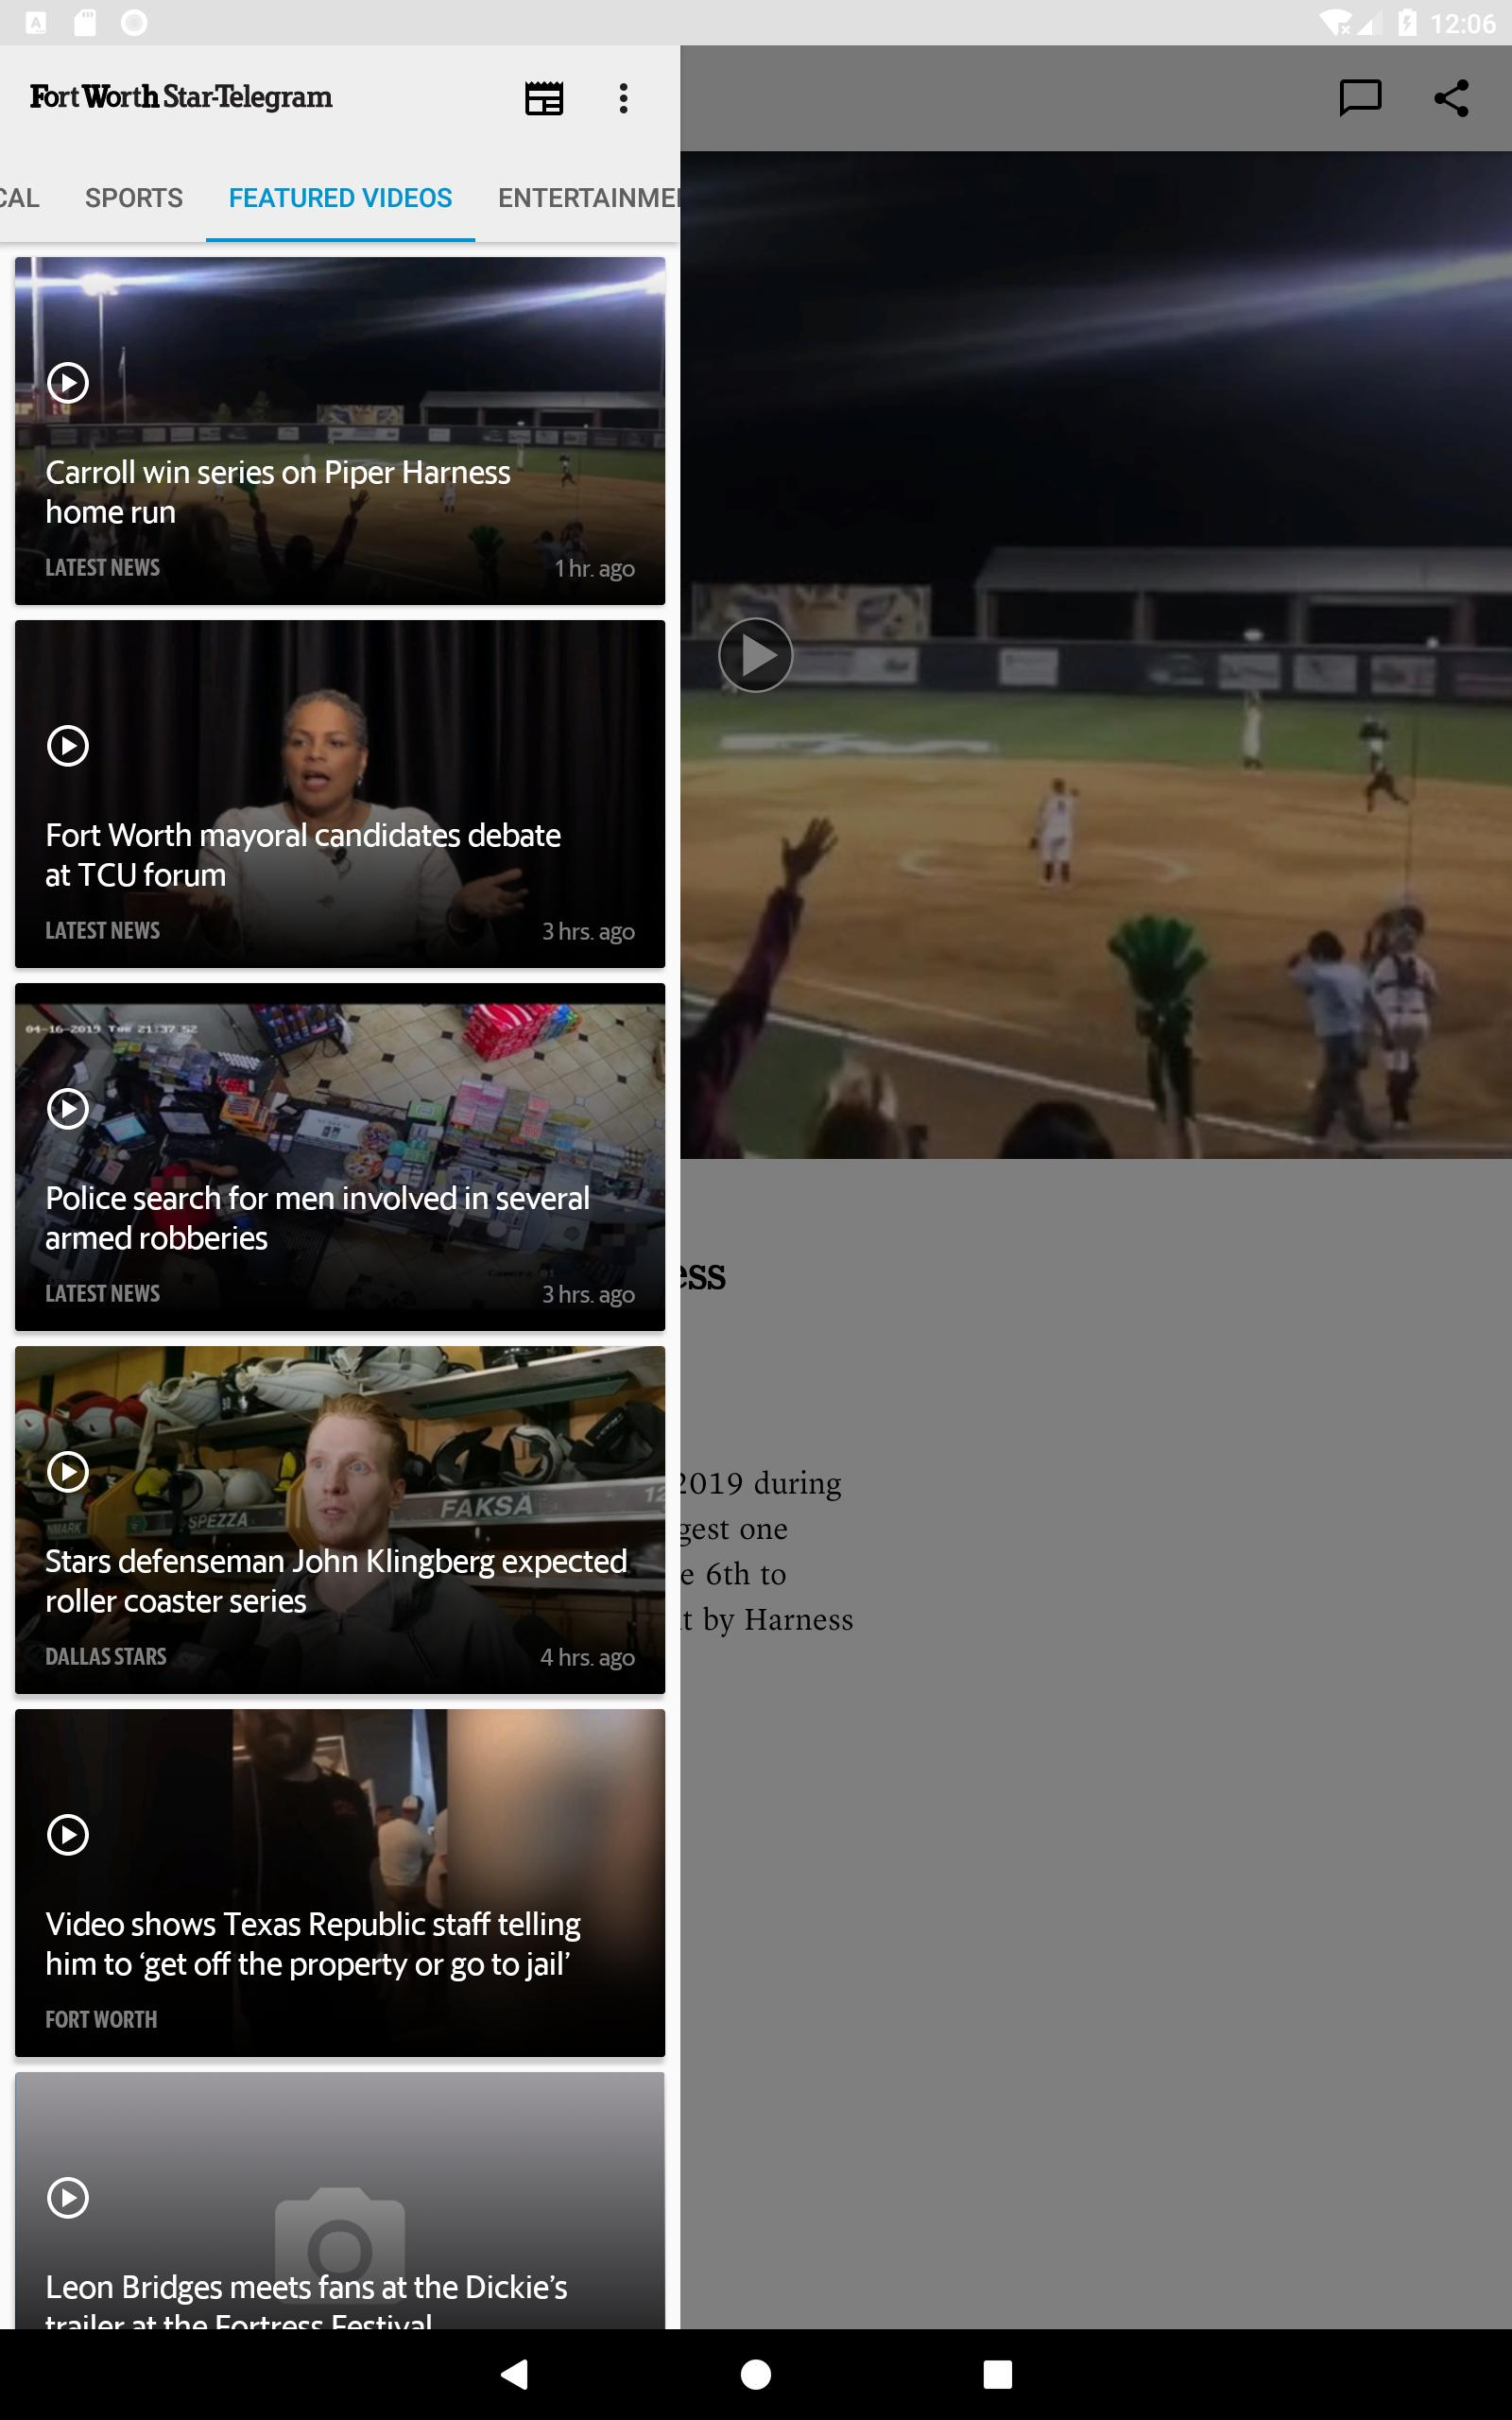 Fort Worth Star-Telegram for Android - APK Download